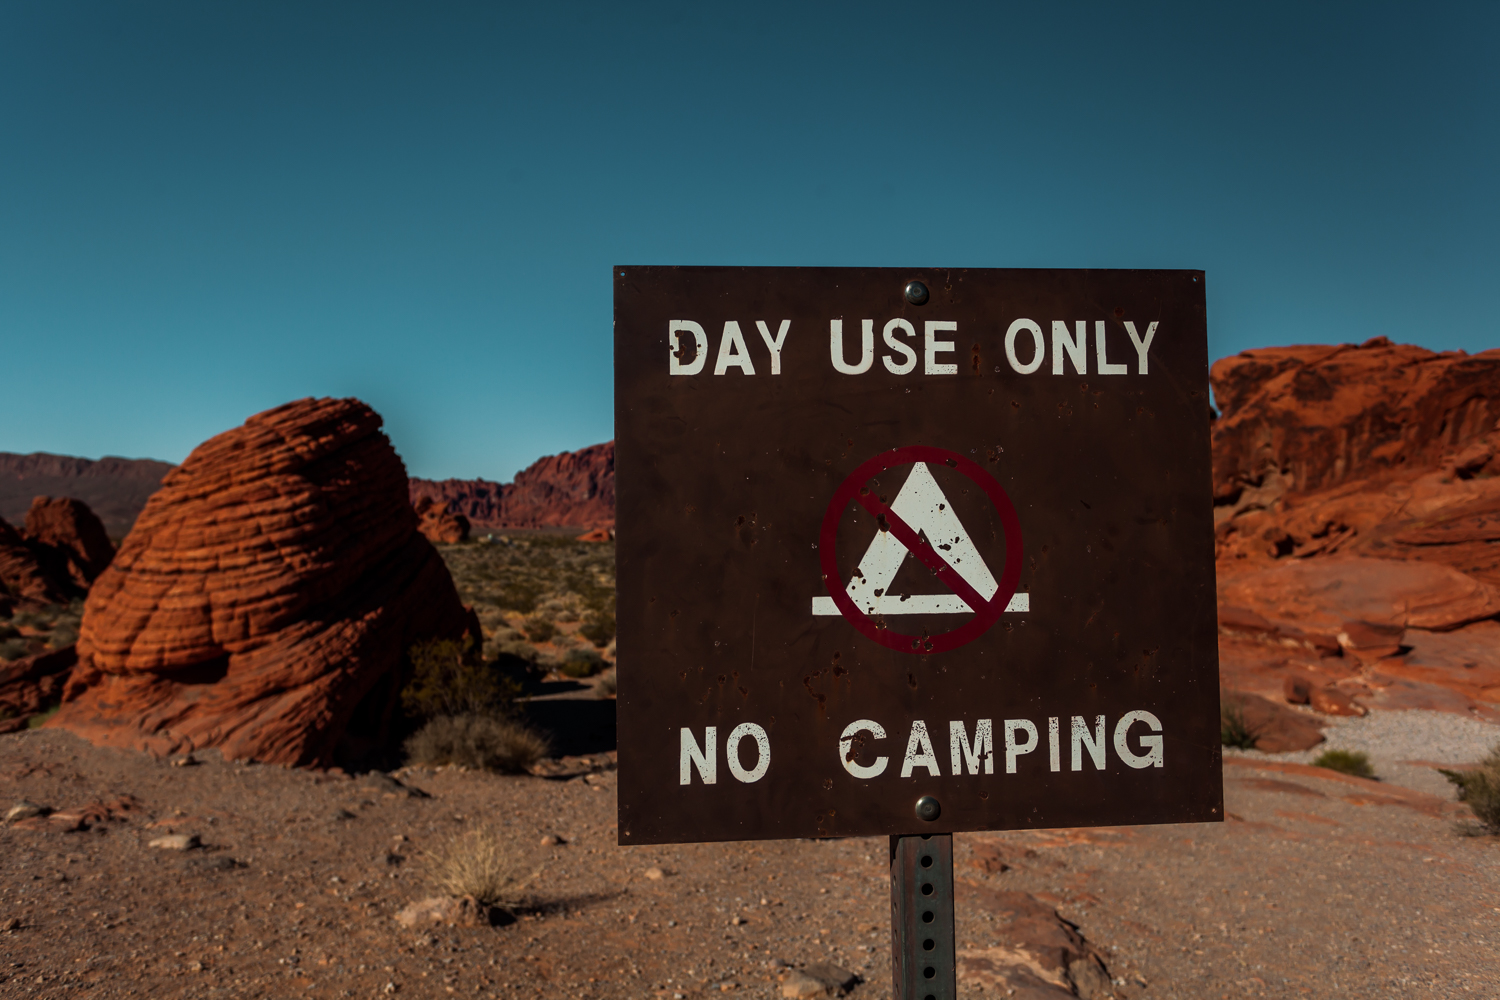 Chaconimages_RoadtripUSA_extras_WEB_-0418.jpg